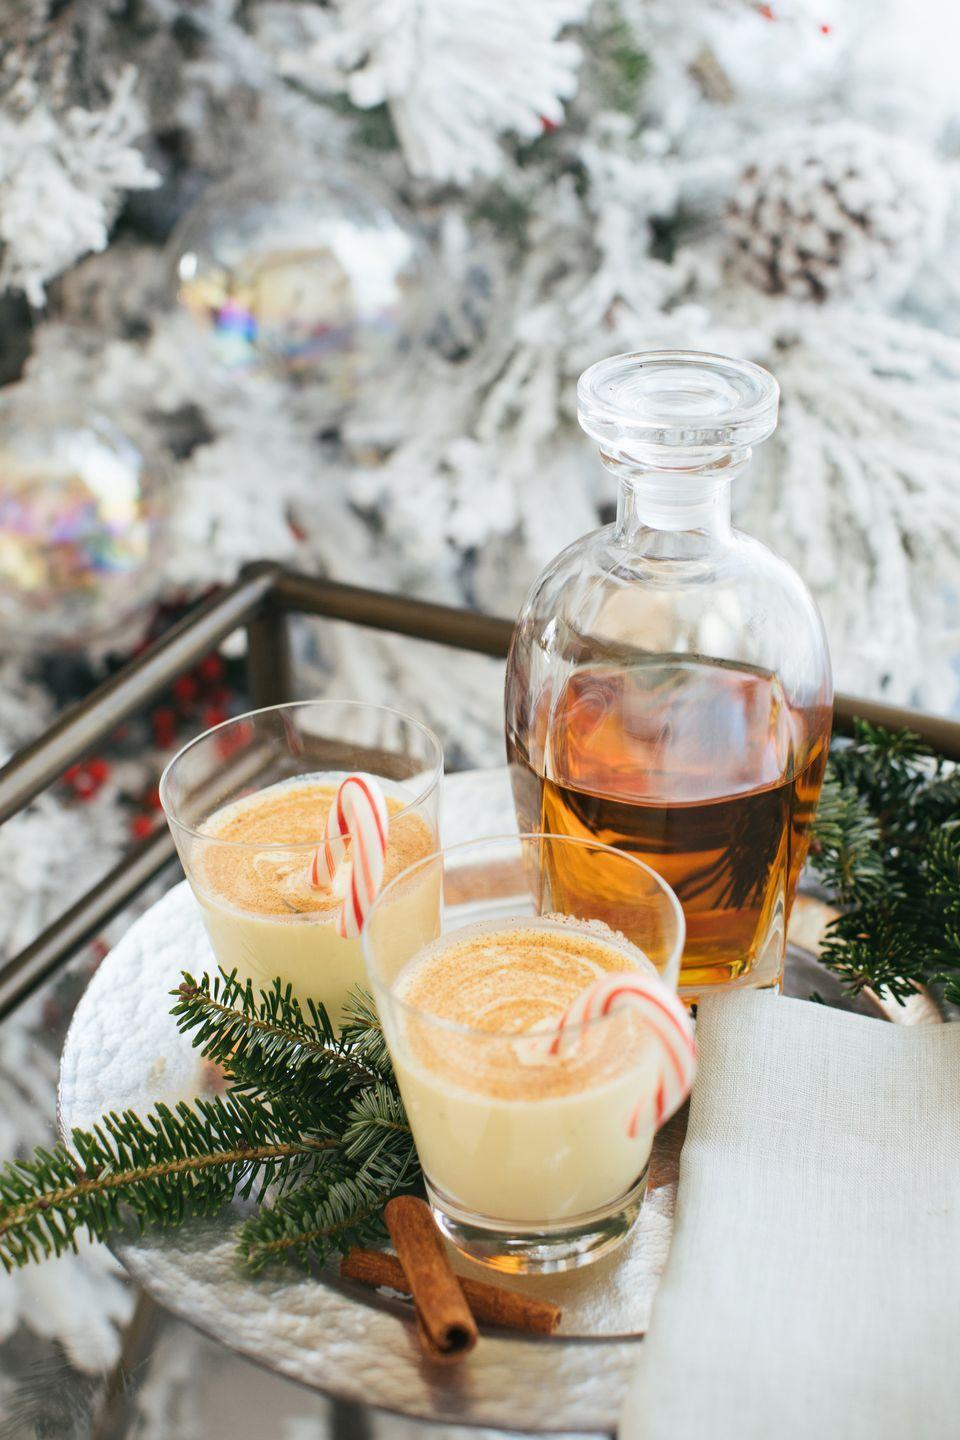 "<p>""Few things say 'holiday' more to me than eggnog. Our family gathers each year to build gingerbread houses, and I always have a classic punch bowl filled for the adults to enjoy."" – Marie Flanigan of <a href=""https://marieflanigan.com/"" rel=""nofollow noopener"" target=""_blank"" data-ylk=""slk:Marie Flanigan Interiors"" class=""link rapid-noclick-resp"">Marie Flanigan Interiors</a>.</p><p><strong>Marie's Eggnog Recipe </strong></p><p><strong>Ingredients:</strong><br>6 egg yolks</p><p>2 cups whole milk</p><p>1 cup heavy cream</p><p>1/4 cup sugar</p><p>1/2 teaspoon vanilla extract</p><p>1/4 teaspoon ground nutmeg</p><p>1/4 teaspoon salt</p><p>3/4 cup brandy</p><p>1/4 cup bourbon </p><p>Cinnamon sticks</p><p><strong>Directions:</strong><br>Beat yolks at medium speed with an electric mixer until frothy. Gradually beat in milk, sugar, vanilla, and nutmeg.<br>Stir in whipping cream, brandy, and bourbon. Chill until you're ready to serve. Garnish each serving with nutmeg sprinkled on top and a cinnamon stick<br><br></p>"